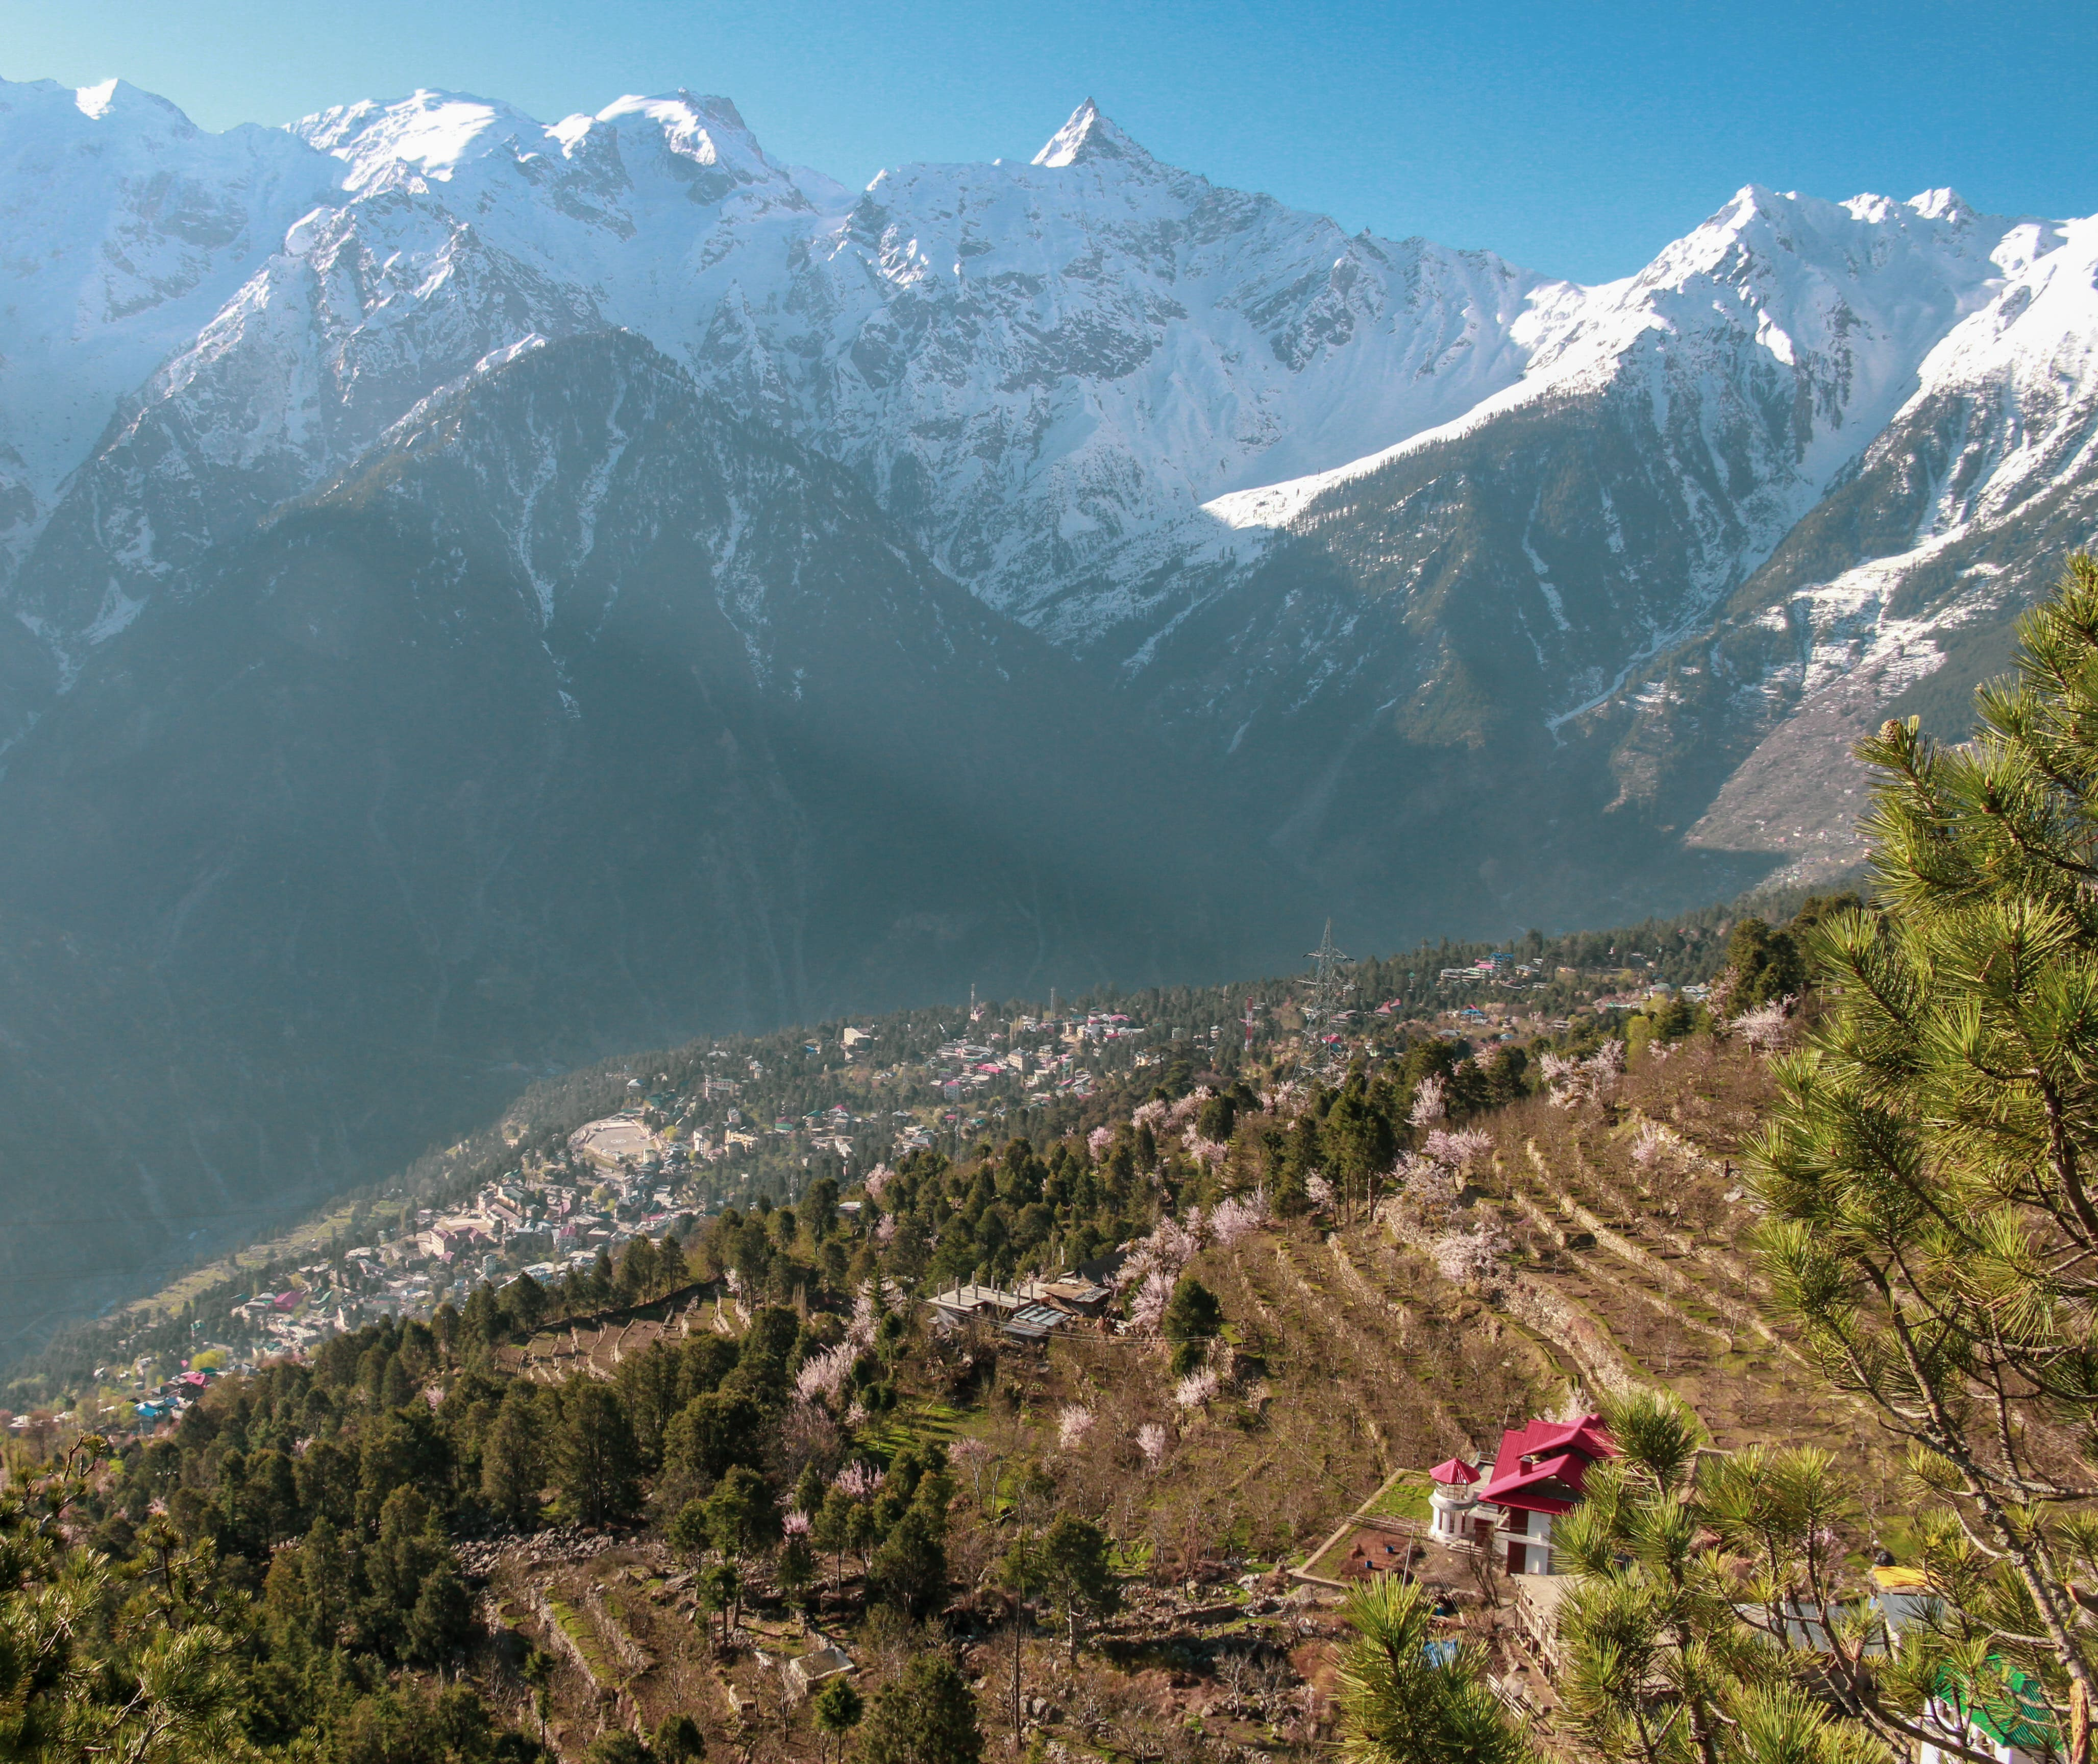 Reckong Peo in a picture from Kalpa Valley